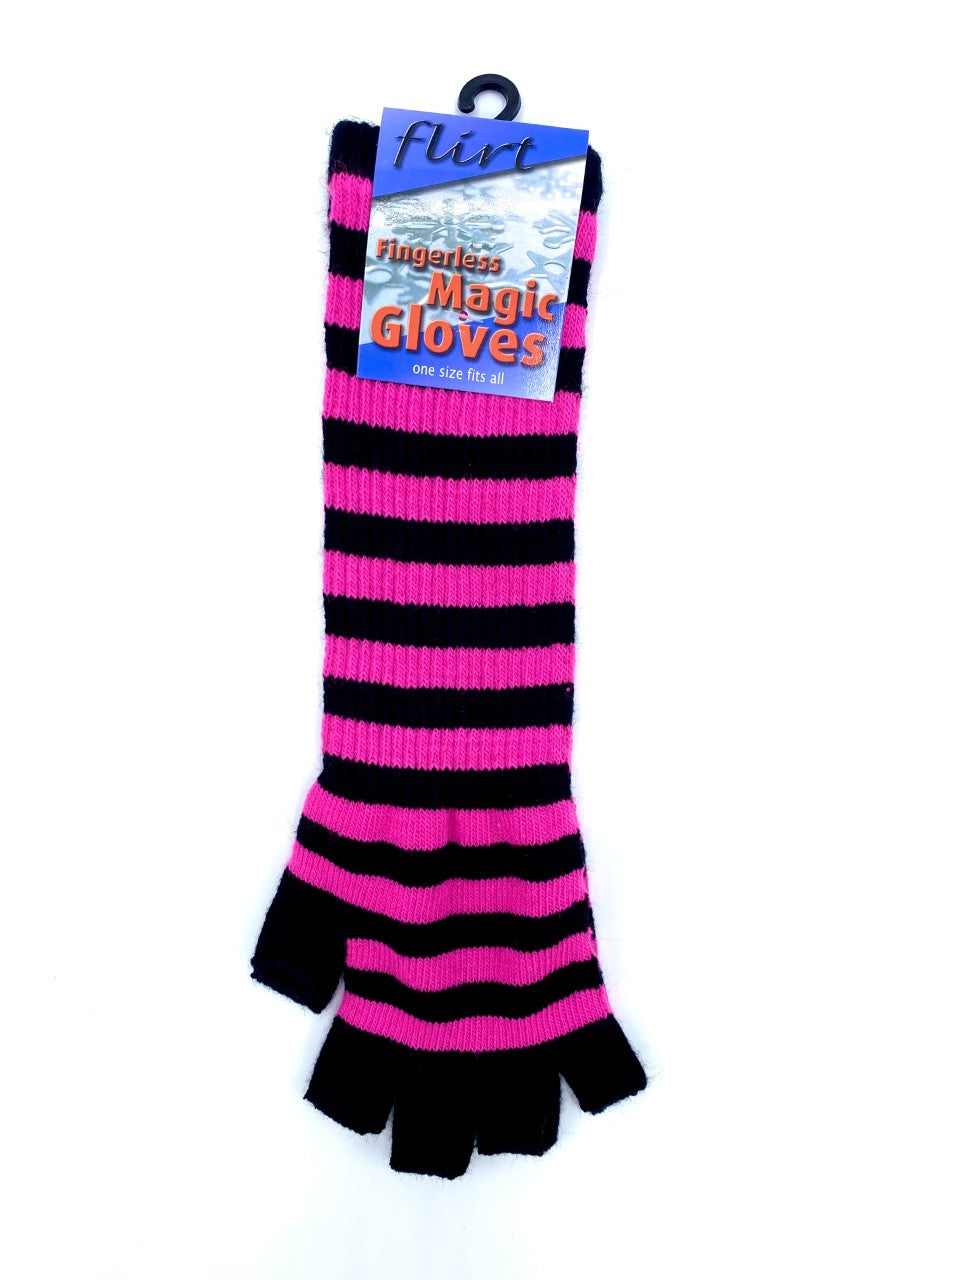 Black with Pink Stripes Long Fingerless Magic Gloves